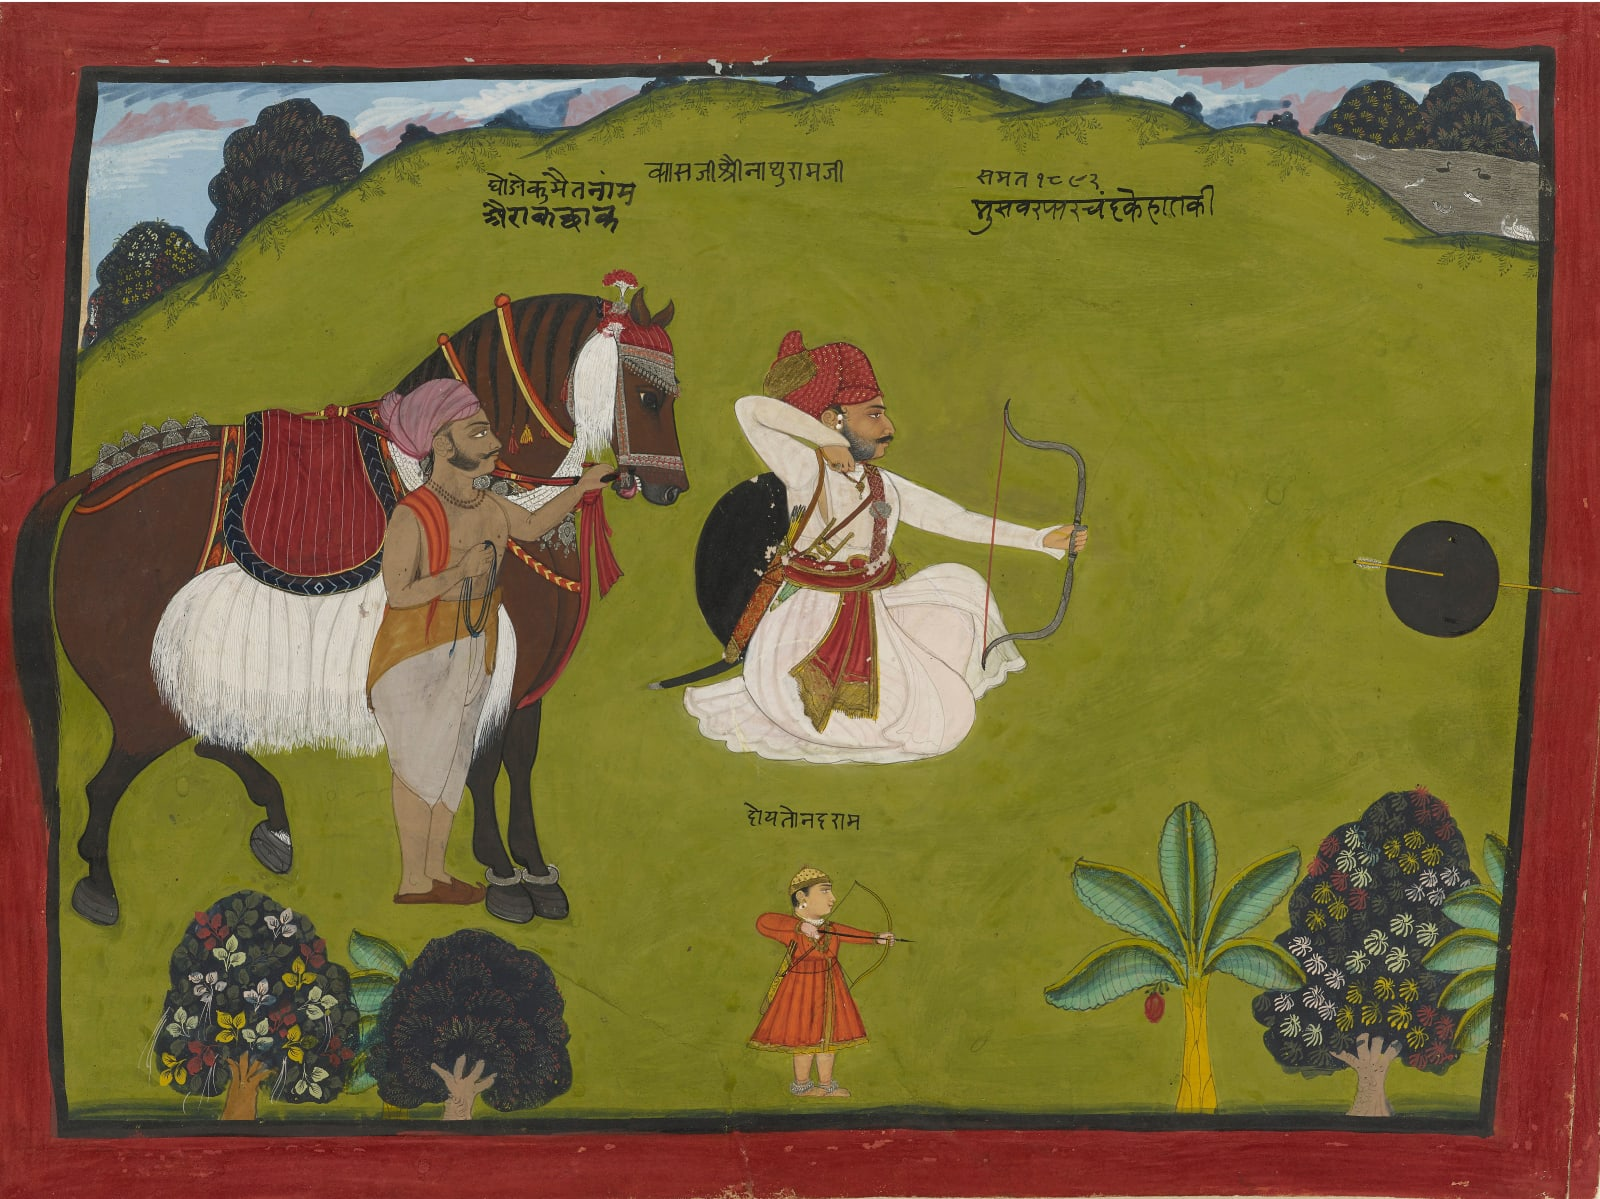 A raja shooting an arrow at a target, signed by Pyar Chand, Sitamau, 1835-36